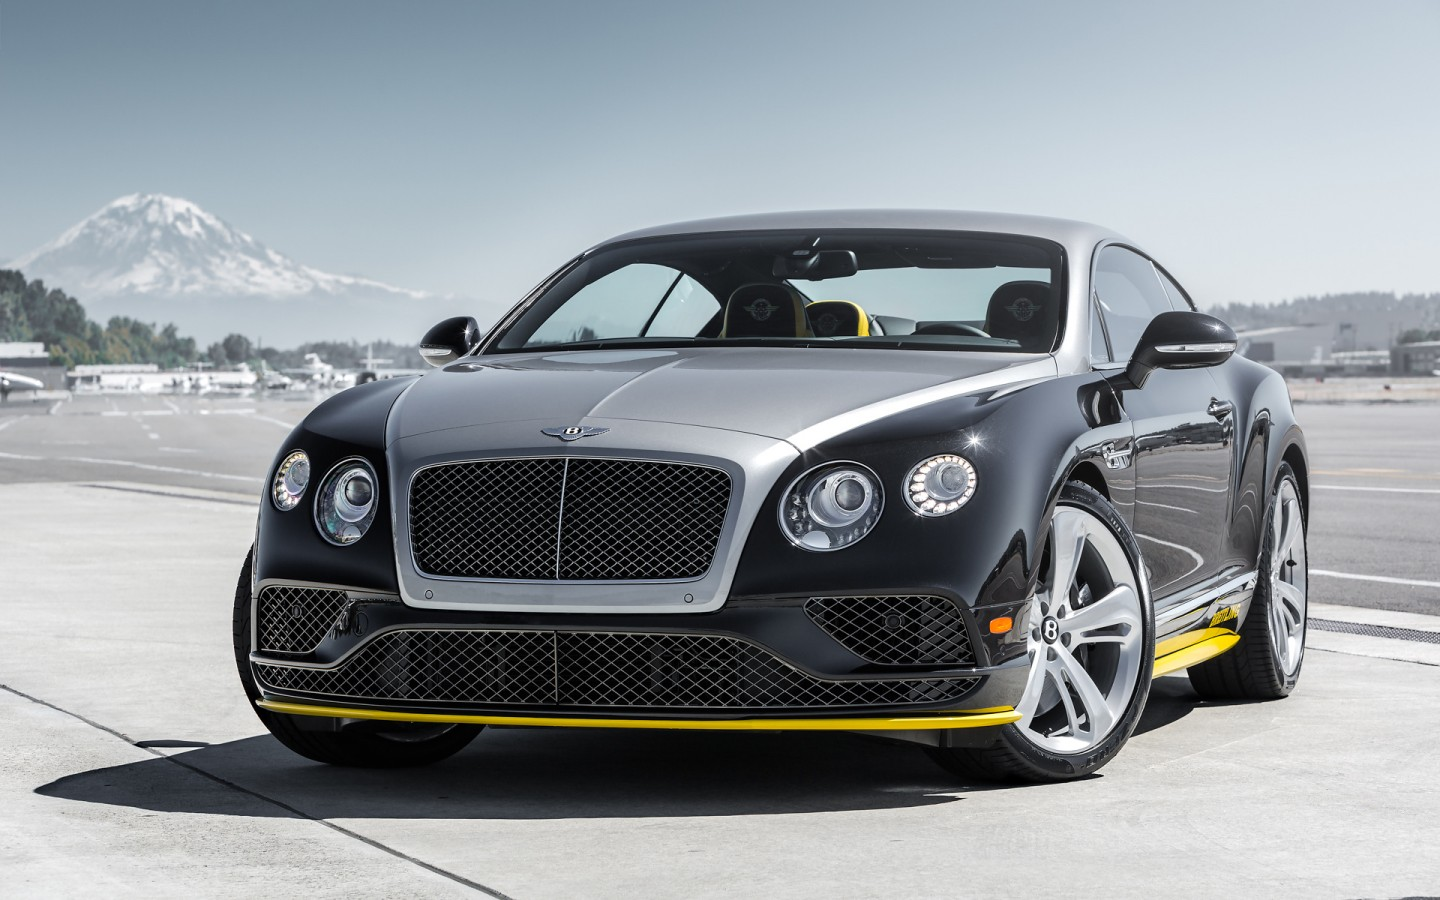 2015 Bentley Continental Gt Wallpaper Hd Car Wallpapers Id 5635